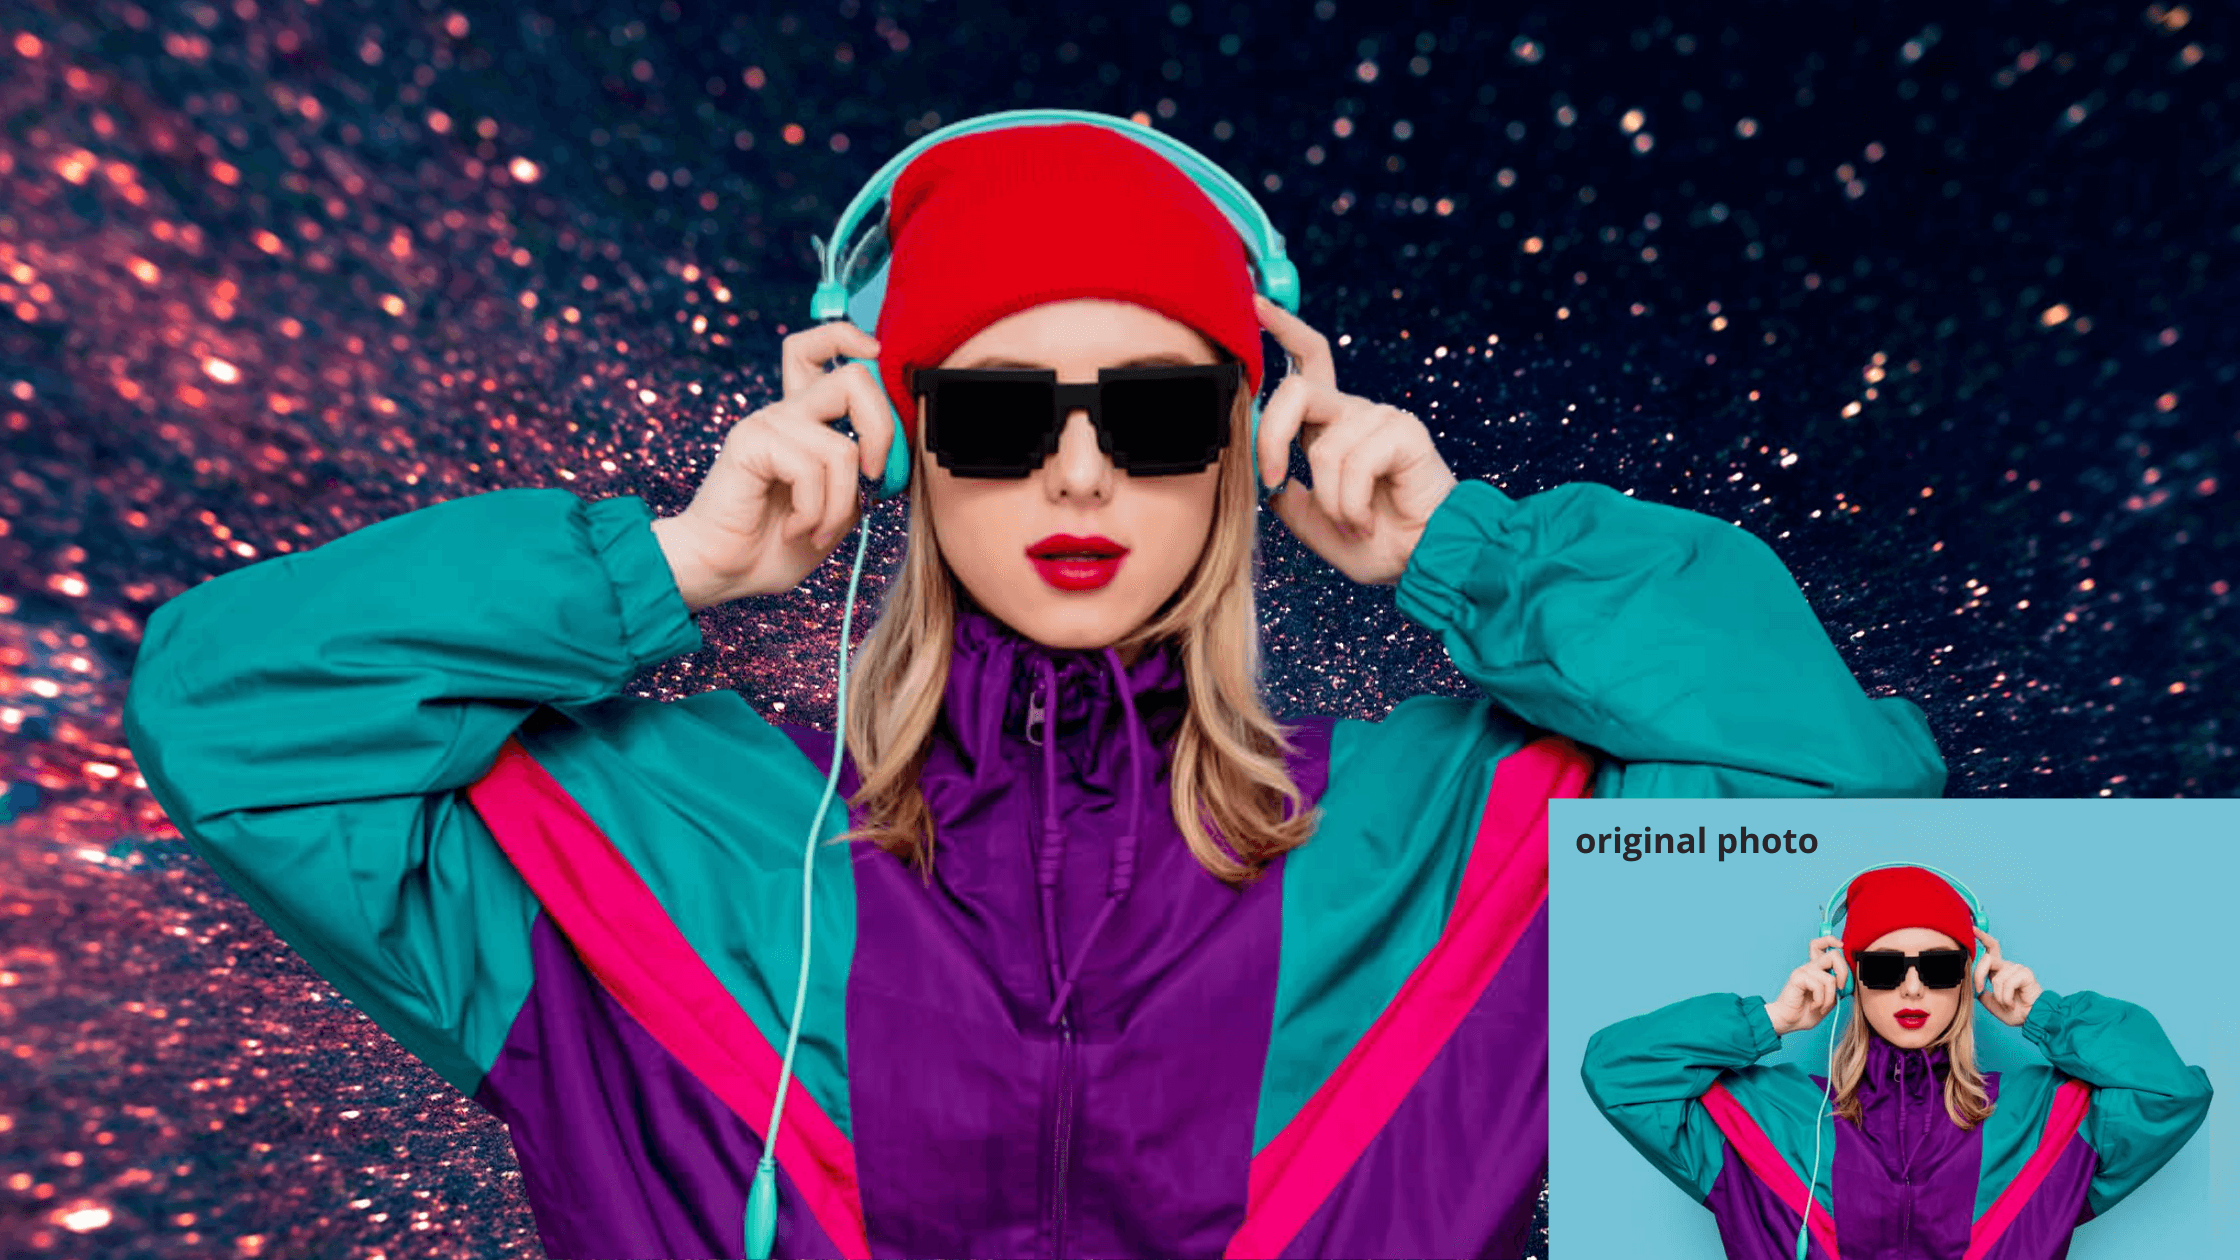 girl in sportswear and sunglasses - add background images